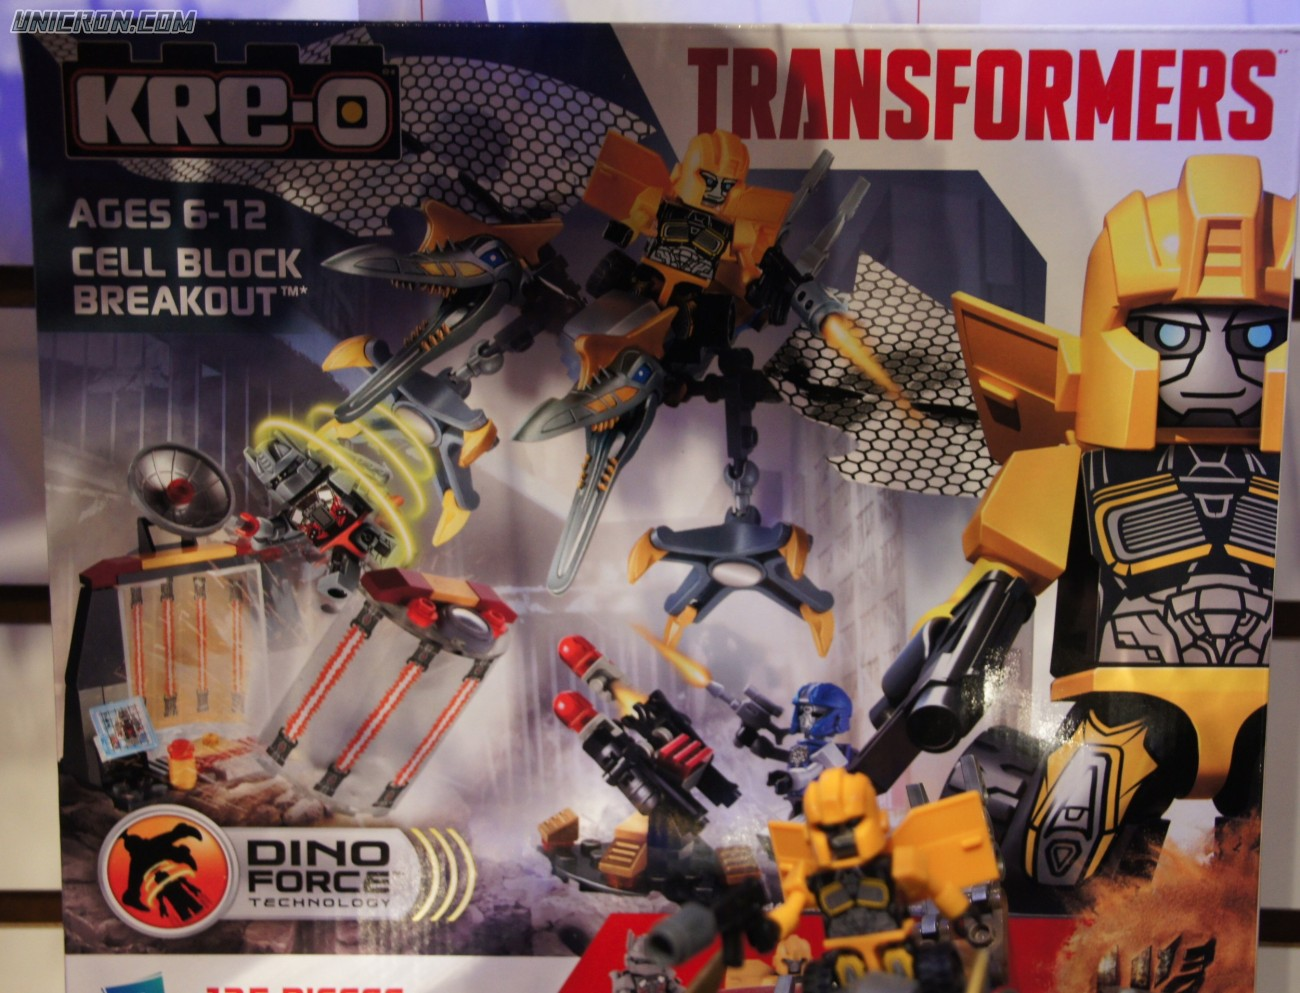 Transformers Kre-O Cell Block Breakout (Kre-O with Bumblebee and Strafe) toy